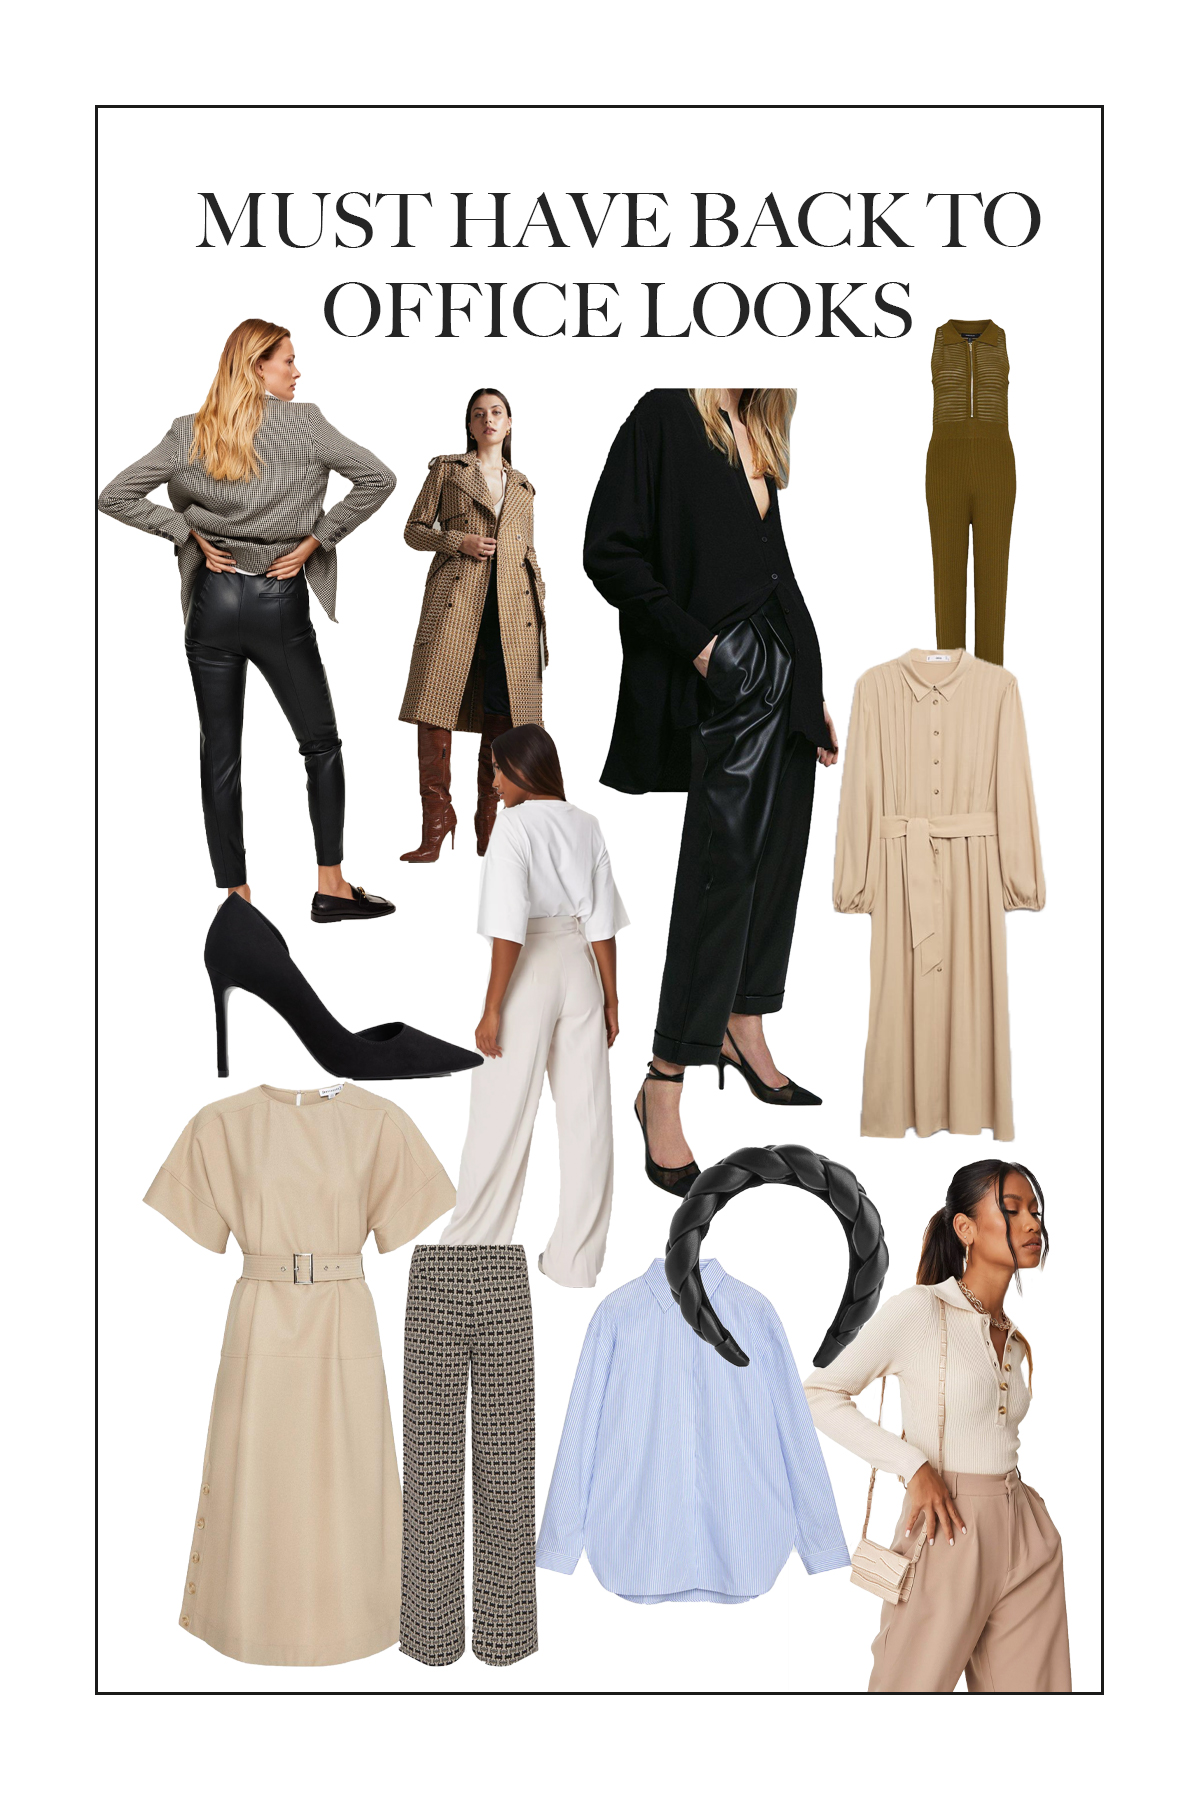 Now back to office working is becoming more of a reality here are some must have back to the office looks for a wardrobe refresh.